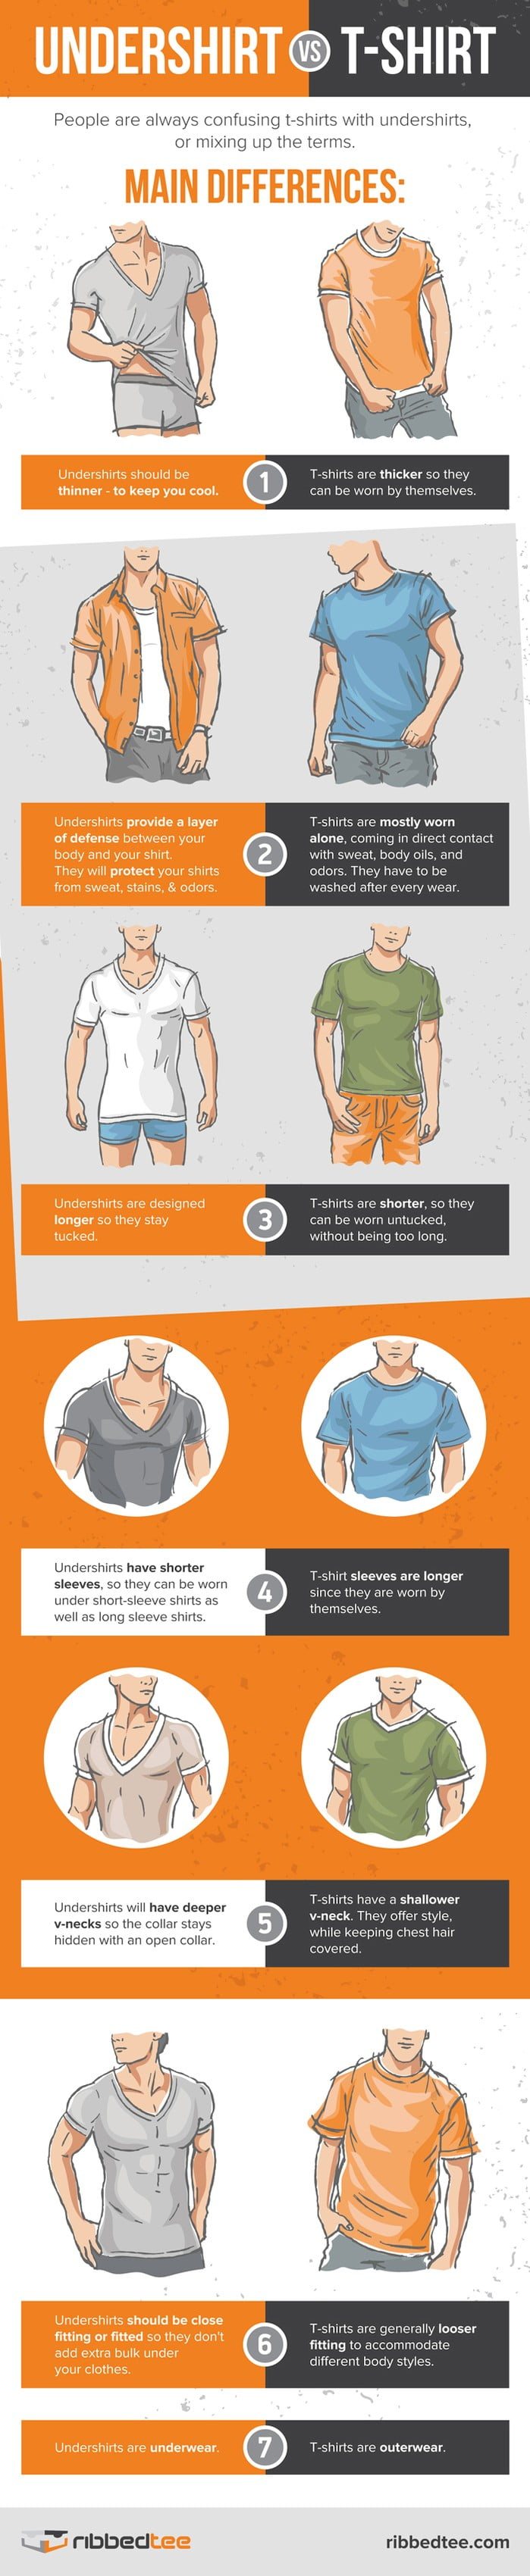 T-Shirt vs Undershirt: Top 7 Differences